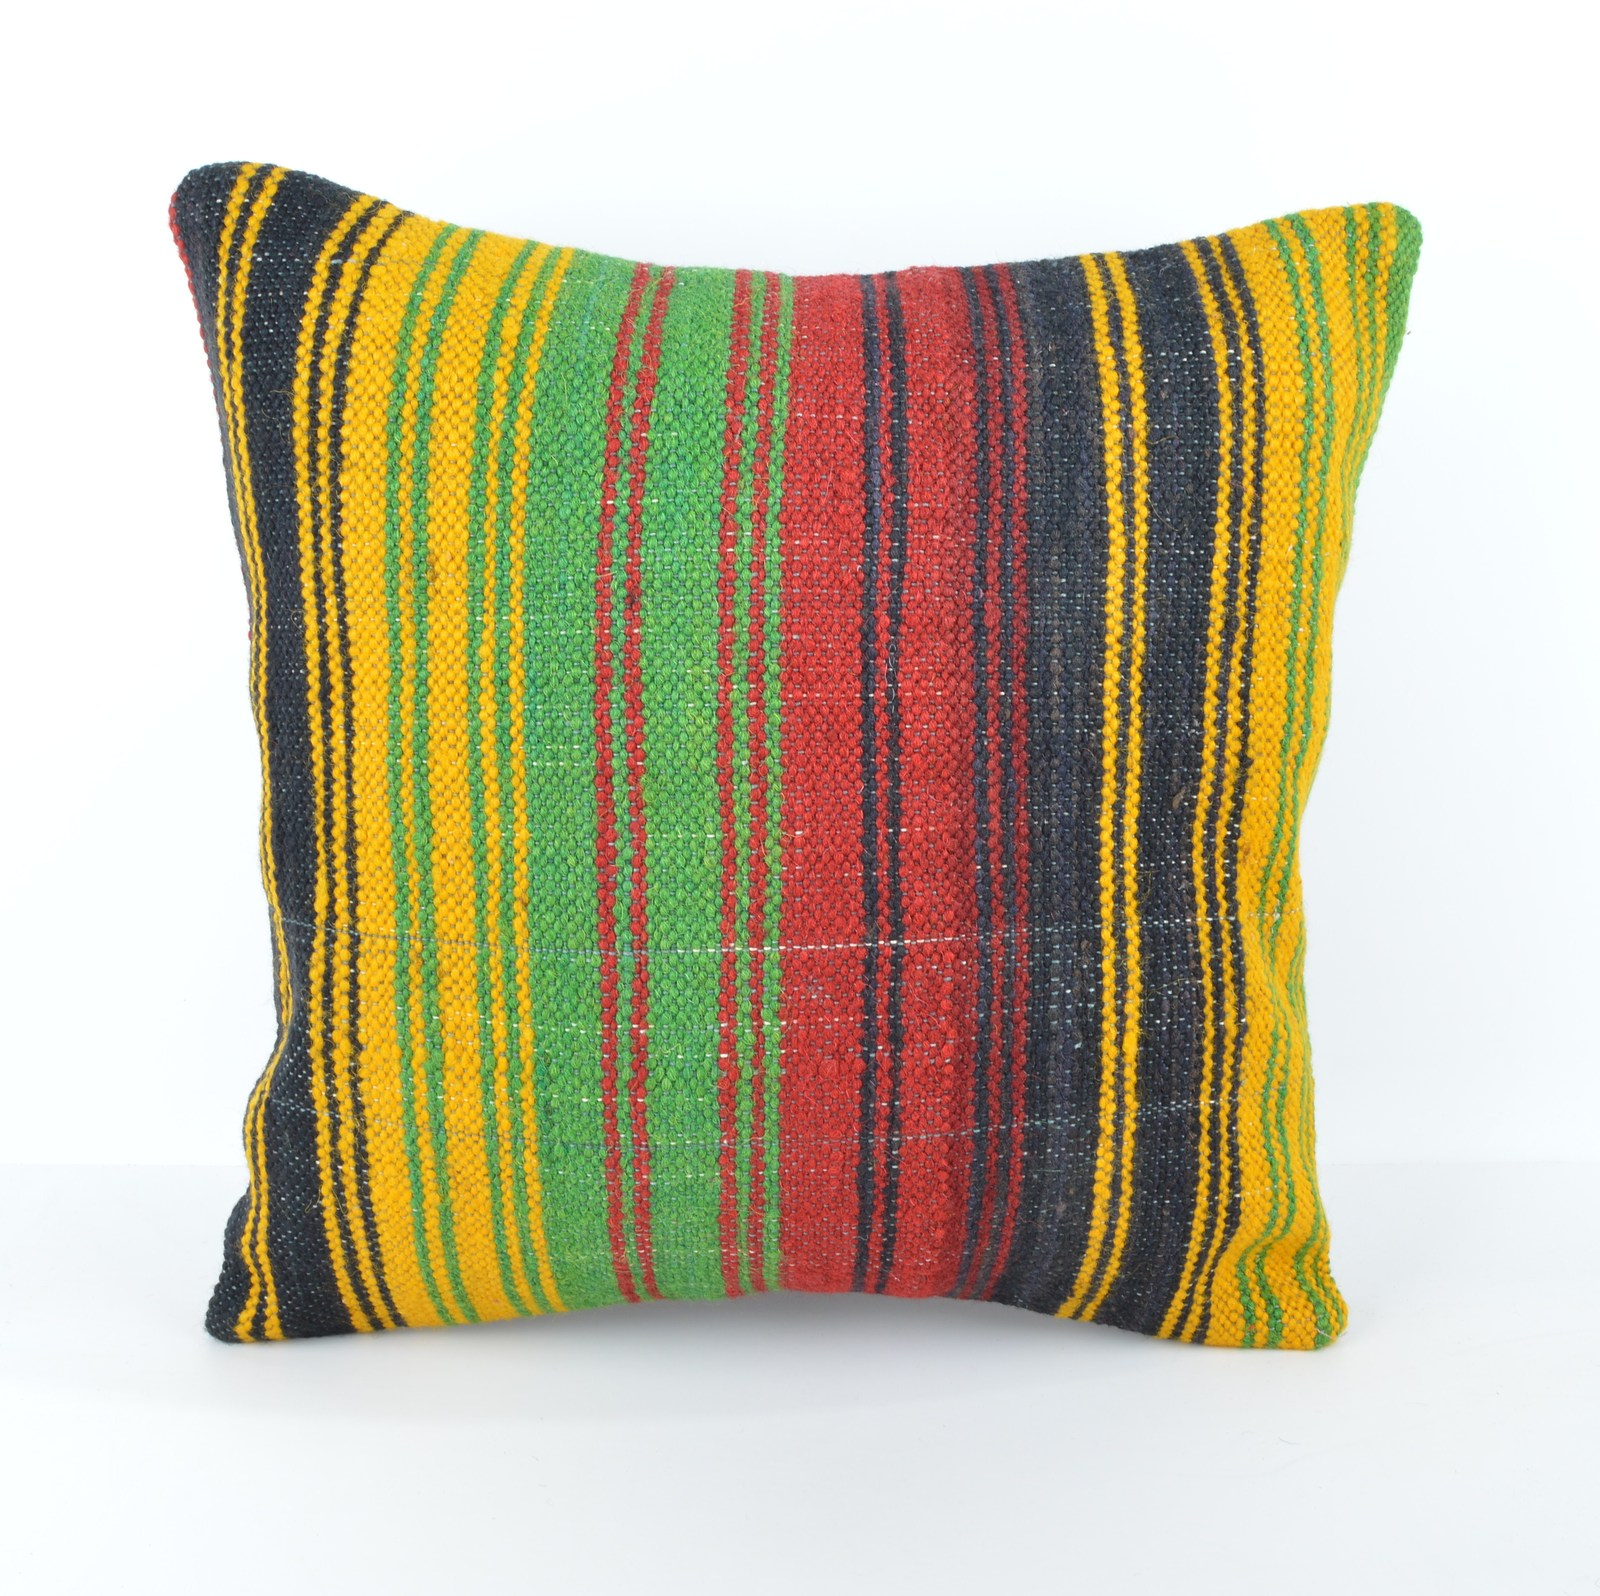 Throw Pillows King Size Bed : kilim,throw pillow kilim,bohemian and similar items